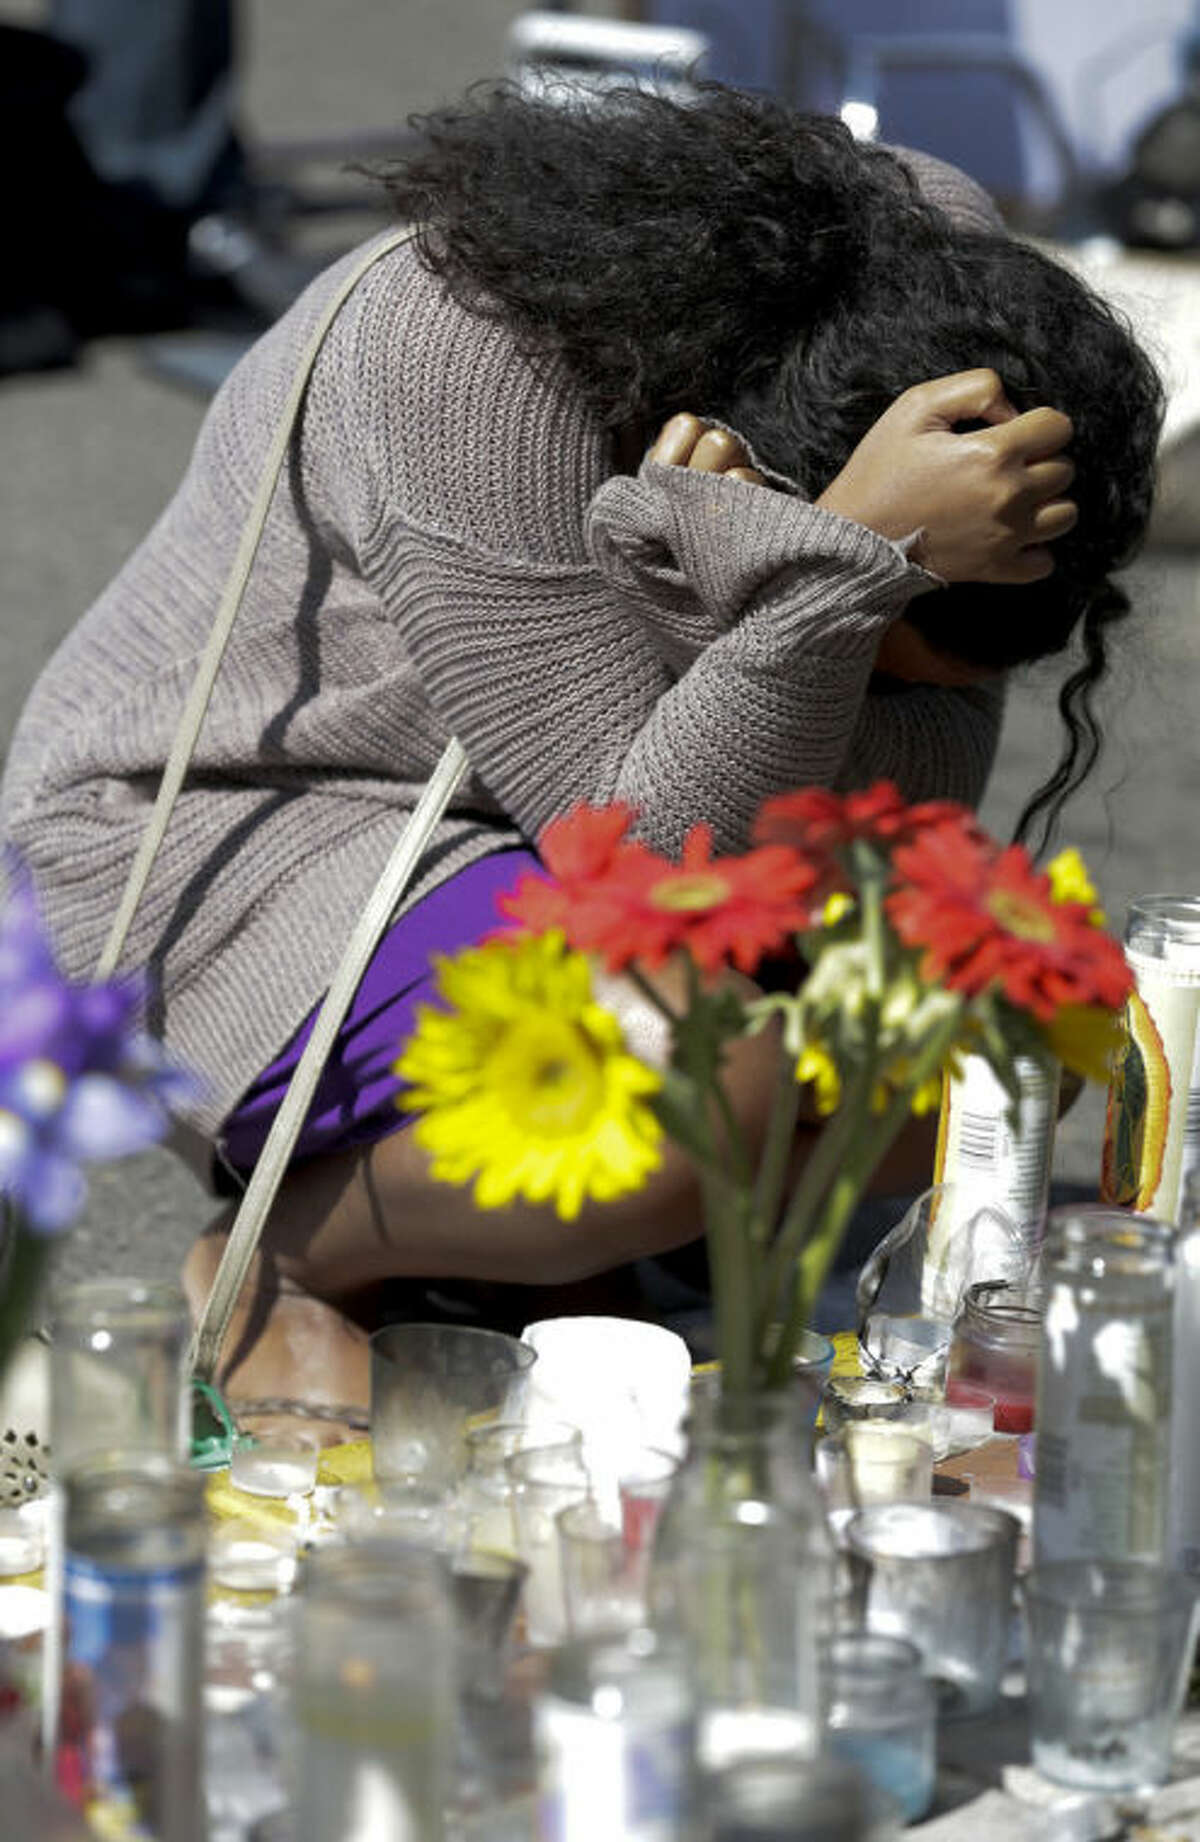 Susana Abdurahman pays her respects at a makeshift memorial in front of the IV Deli Mart, where part of Friday night's mass shooting took place by a drive-by shooter Sunday, May 25, 2014, in the Isla Vista area near Goleta, Calif. Sheriff's officials said Elliot Rodger, 22, went on a rampage near the University of California, Santa Barbara, stabbing three people to death at his apartment before shooting and killing three more in a crime spree through a nearby neighborhood. (AP Photo/Chris Carlson)